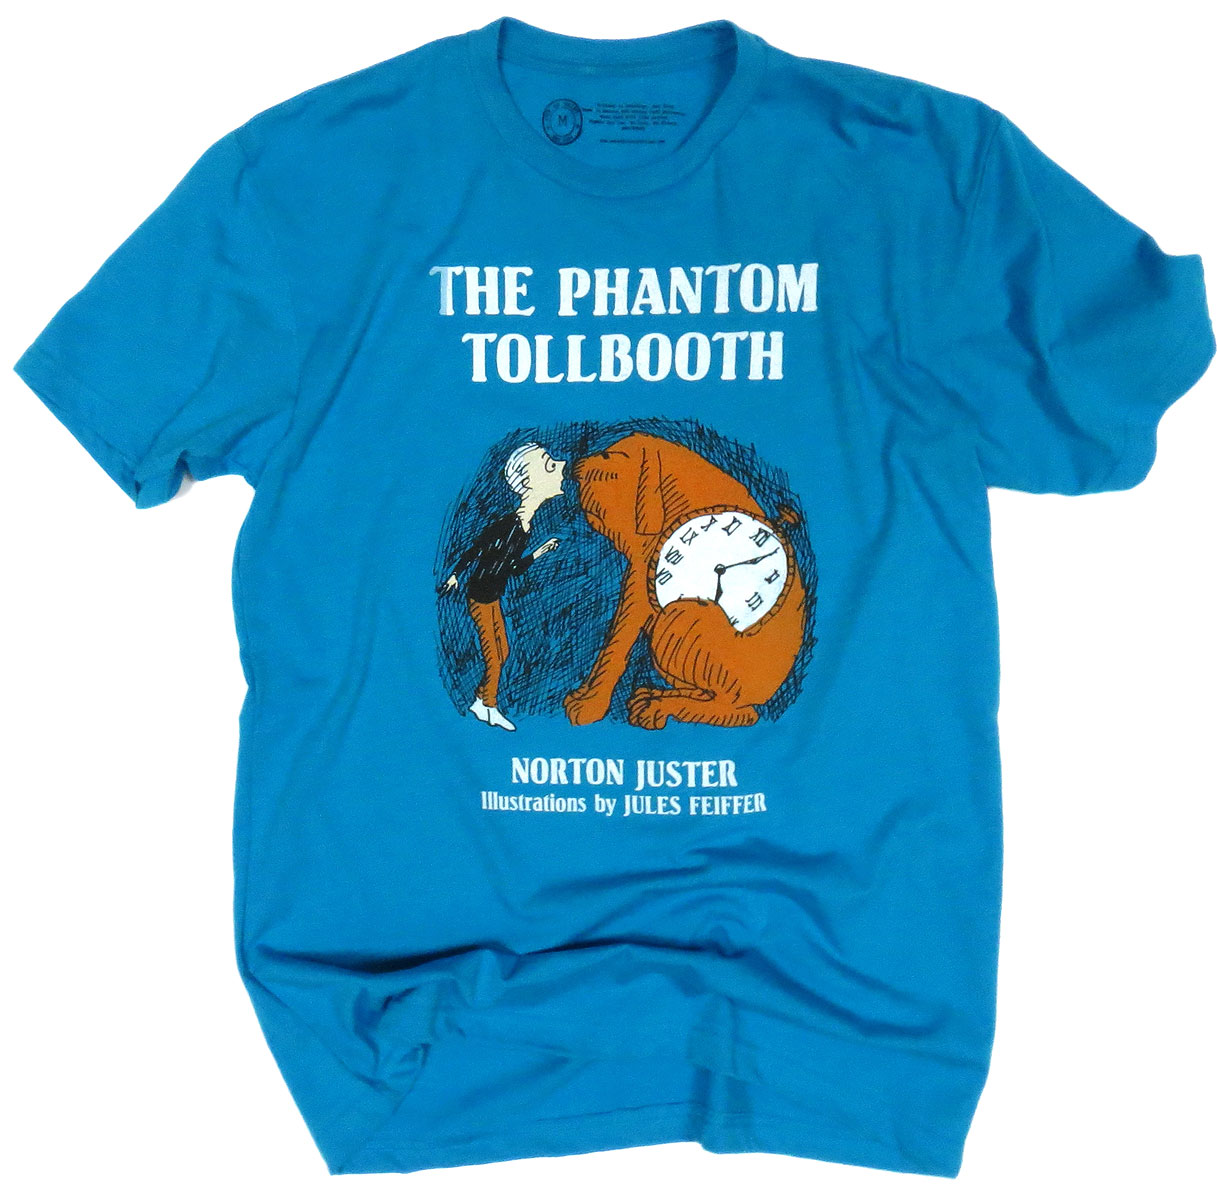 The Phantom Tollbooth Tee